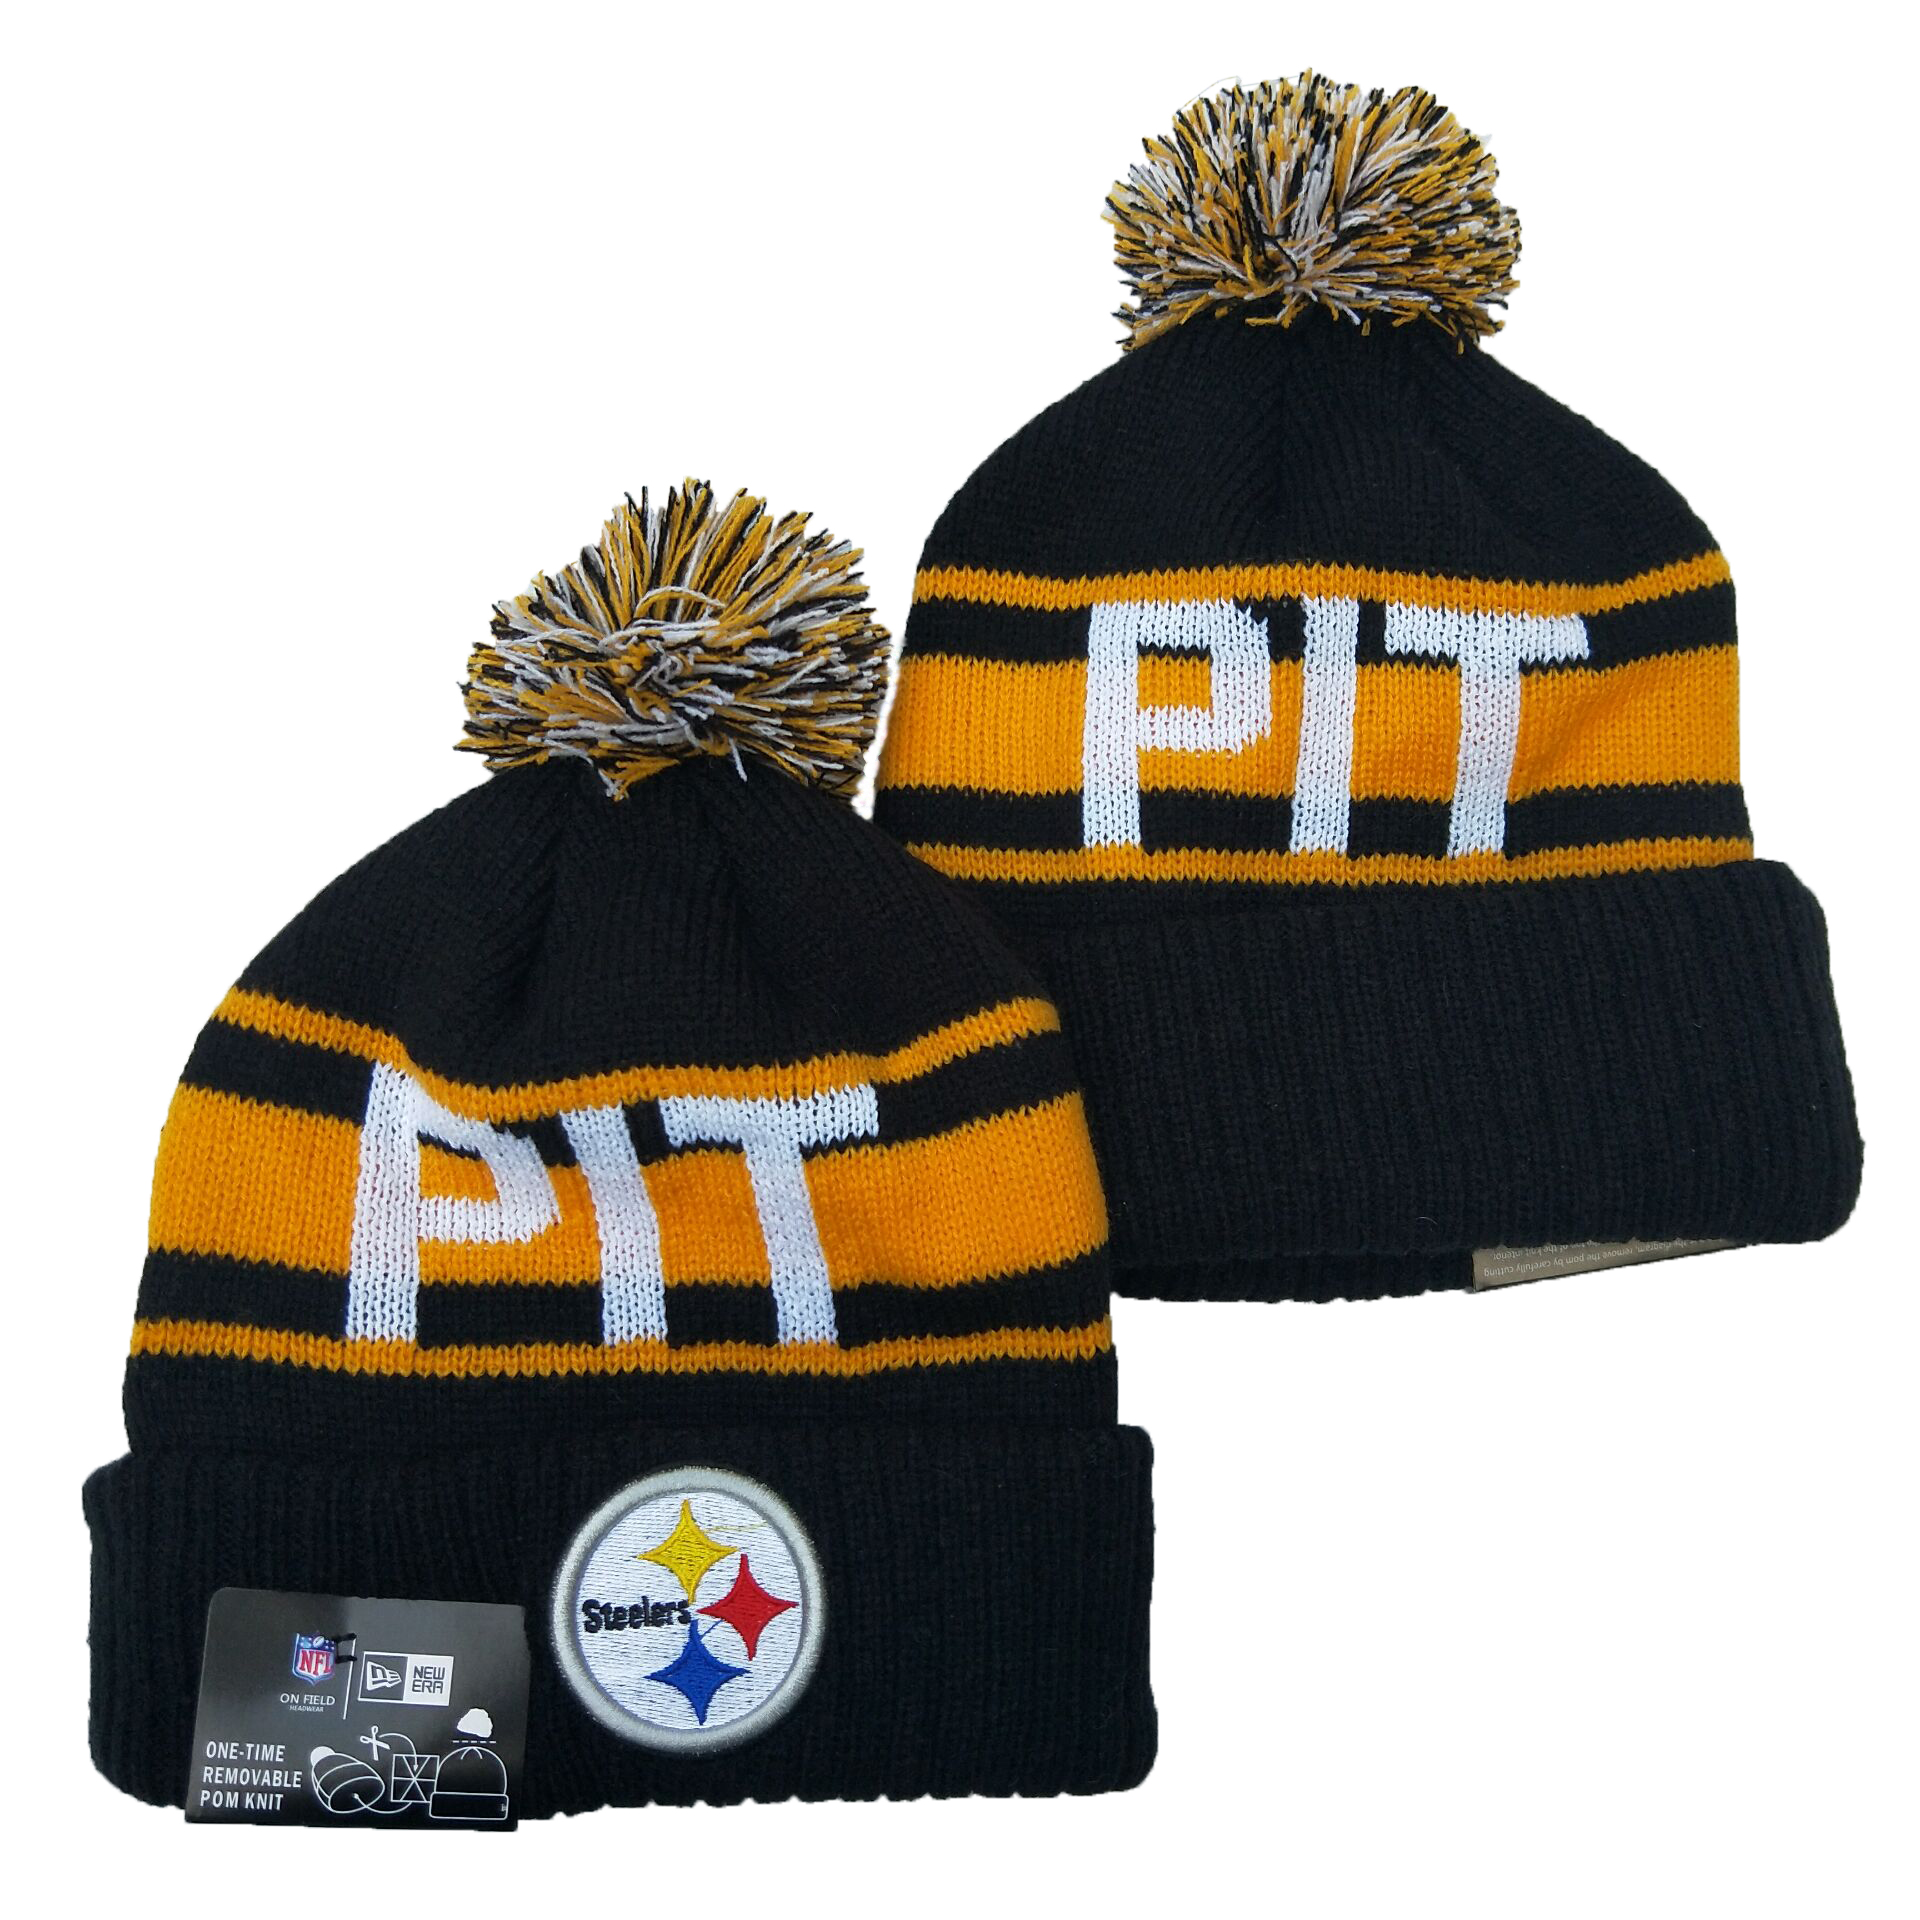 Steelers Team Logo Black Yellow Pom Knit Hat YD